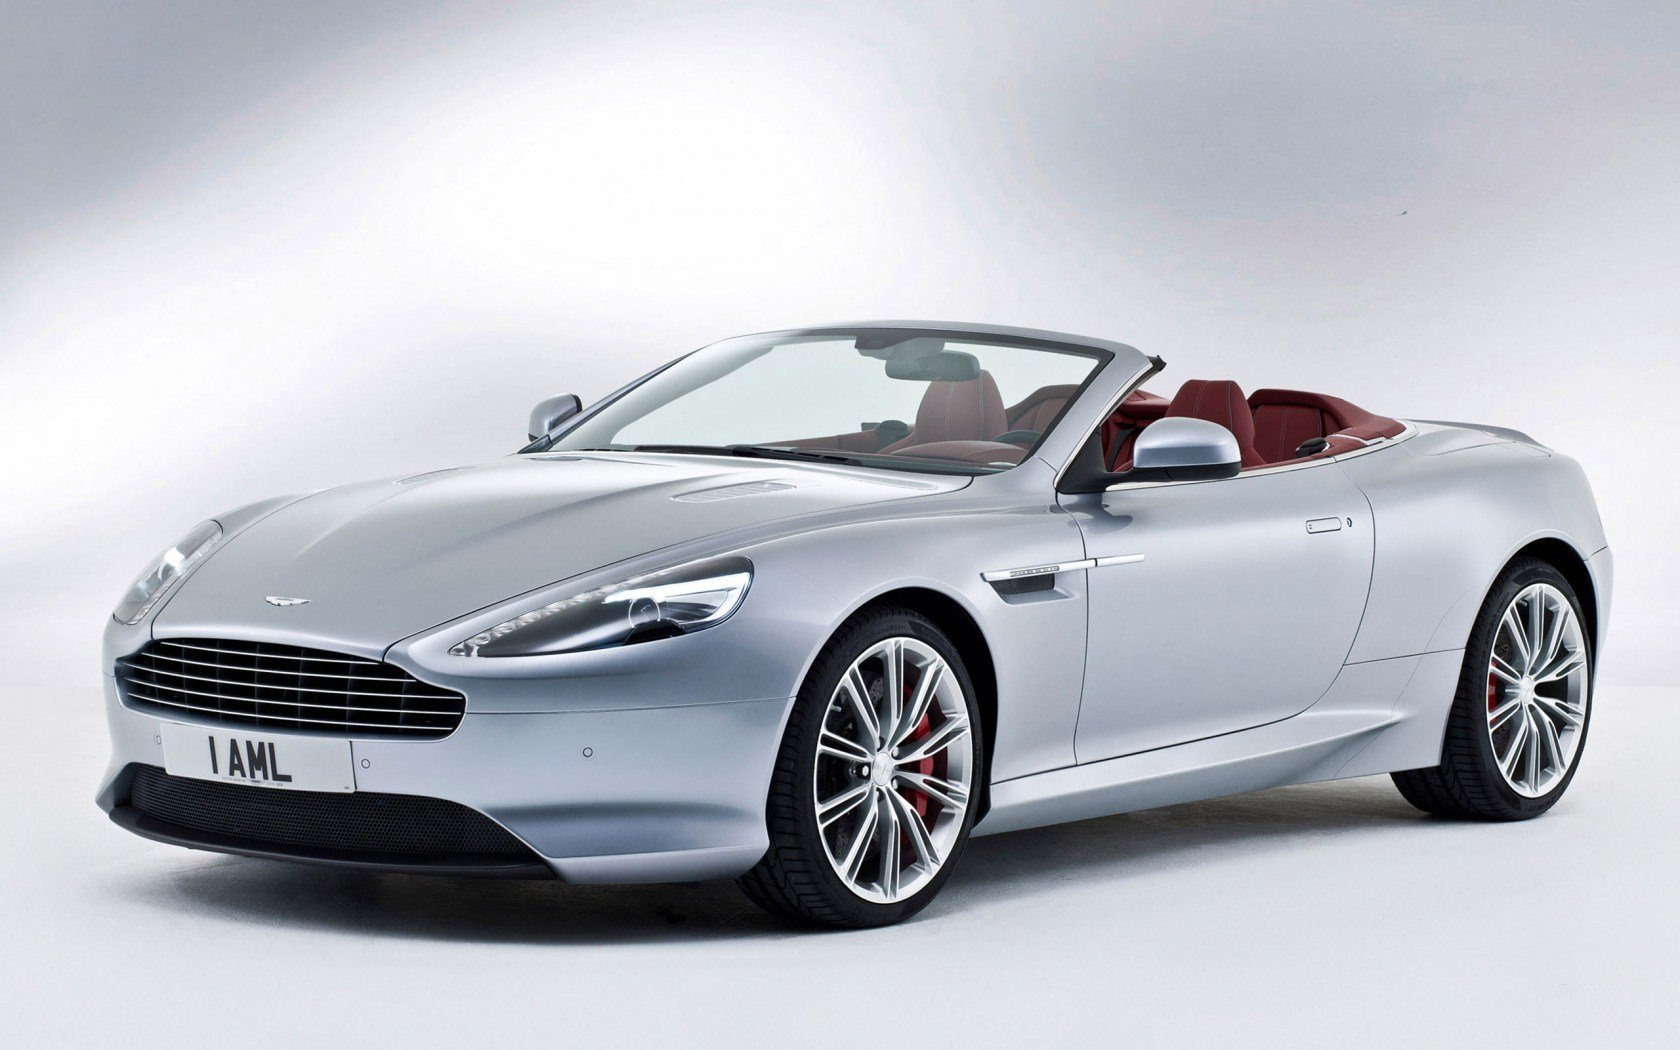 Latest 2013 Aston Martin Db9 Coupe Wallpaper Hd Car Wallpapers Free Download